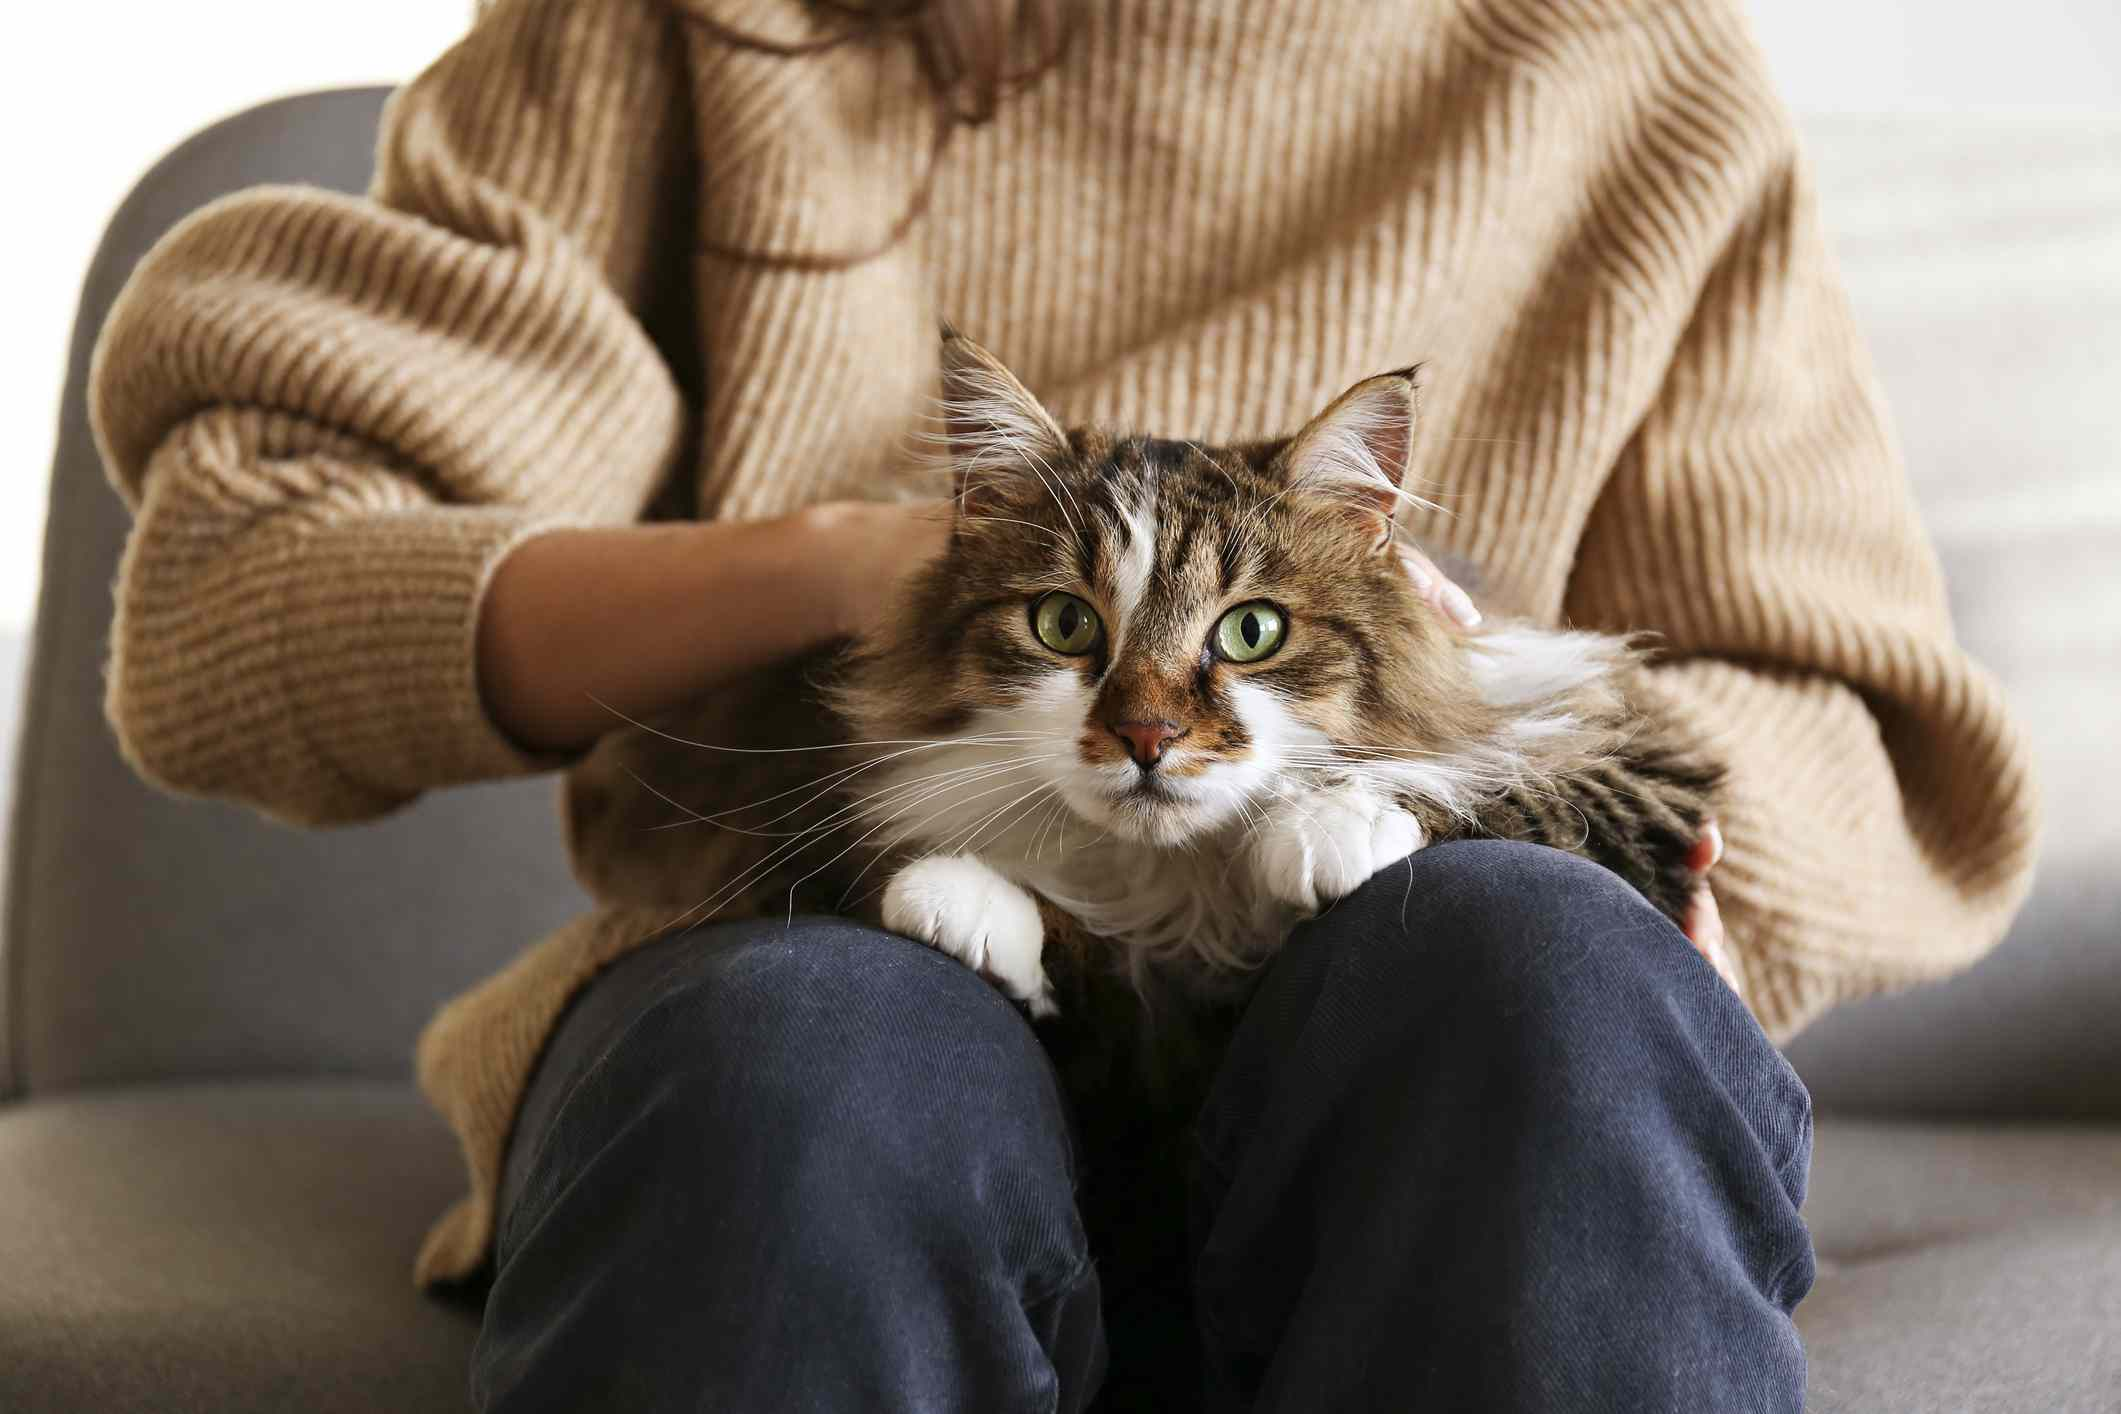 A woman in a brown sweater holding a ragamuffin cat in her lap.